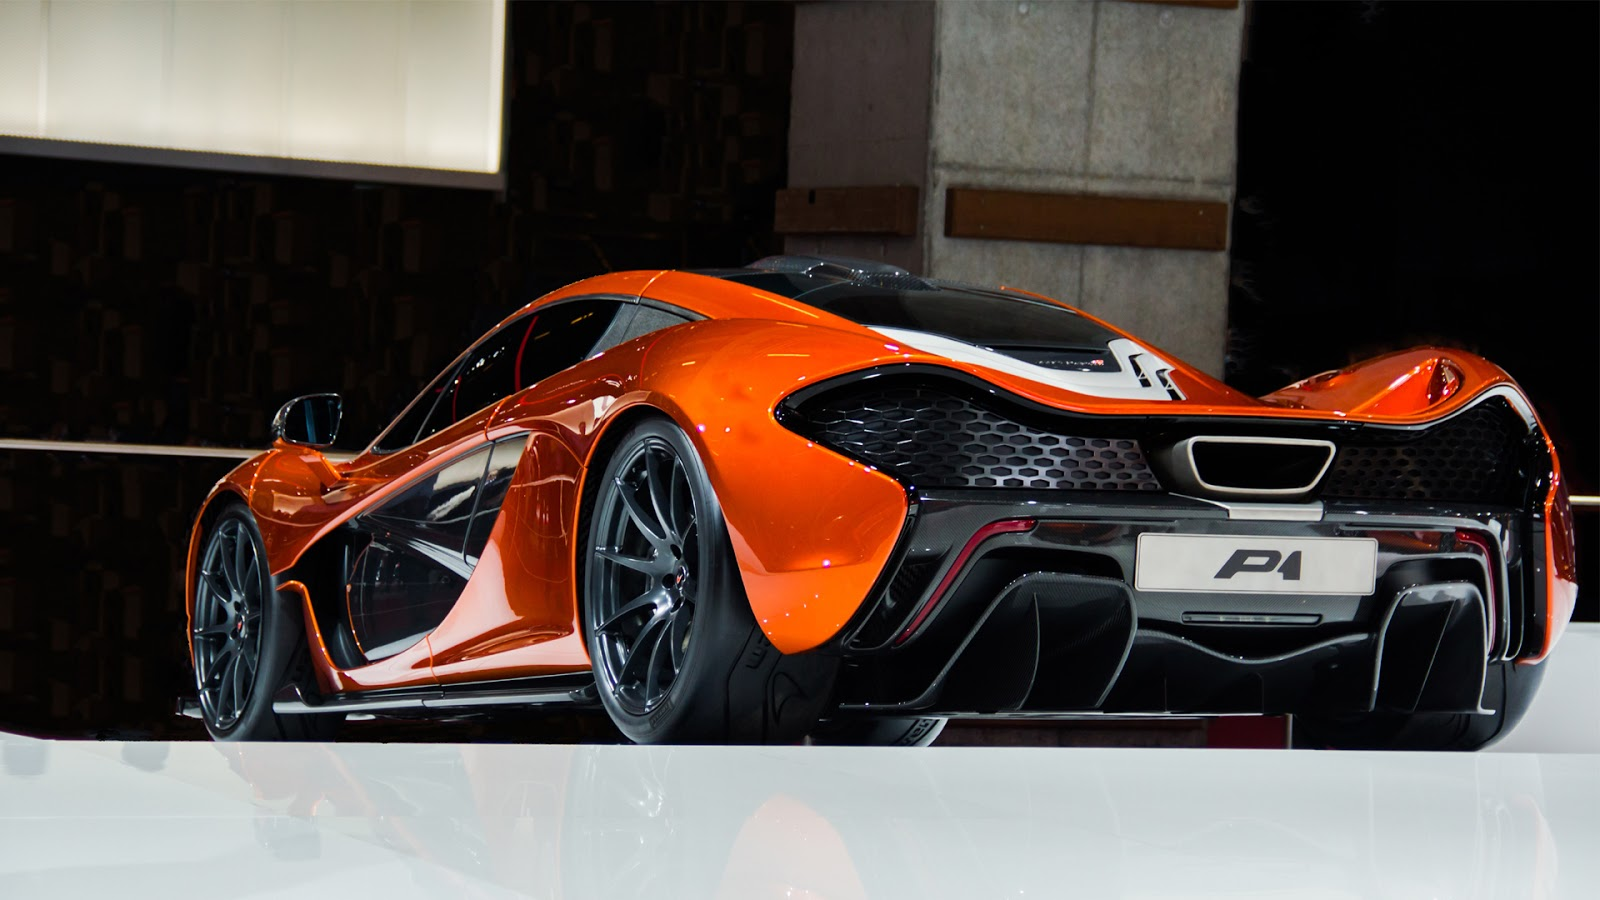 mclaren p1 hd wallpapers high definition free background. Black Bedroom Furniture Sets. Home Design Ideas